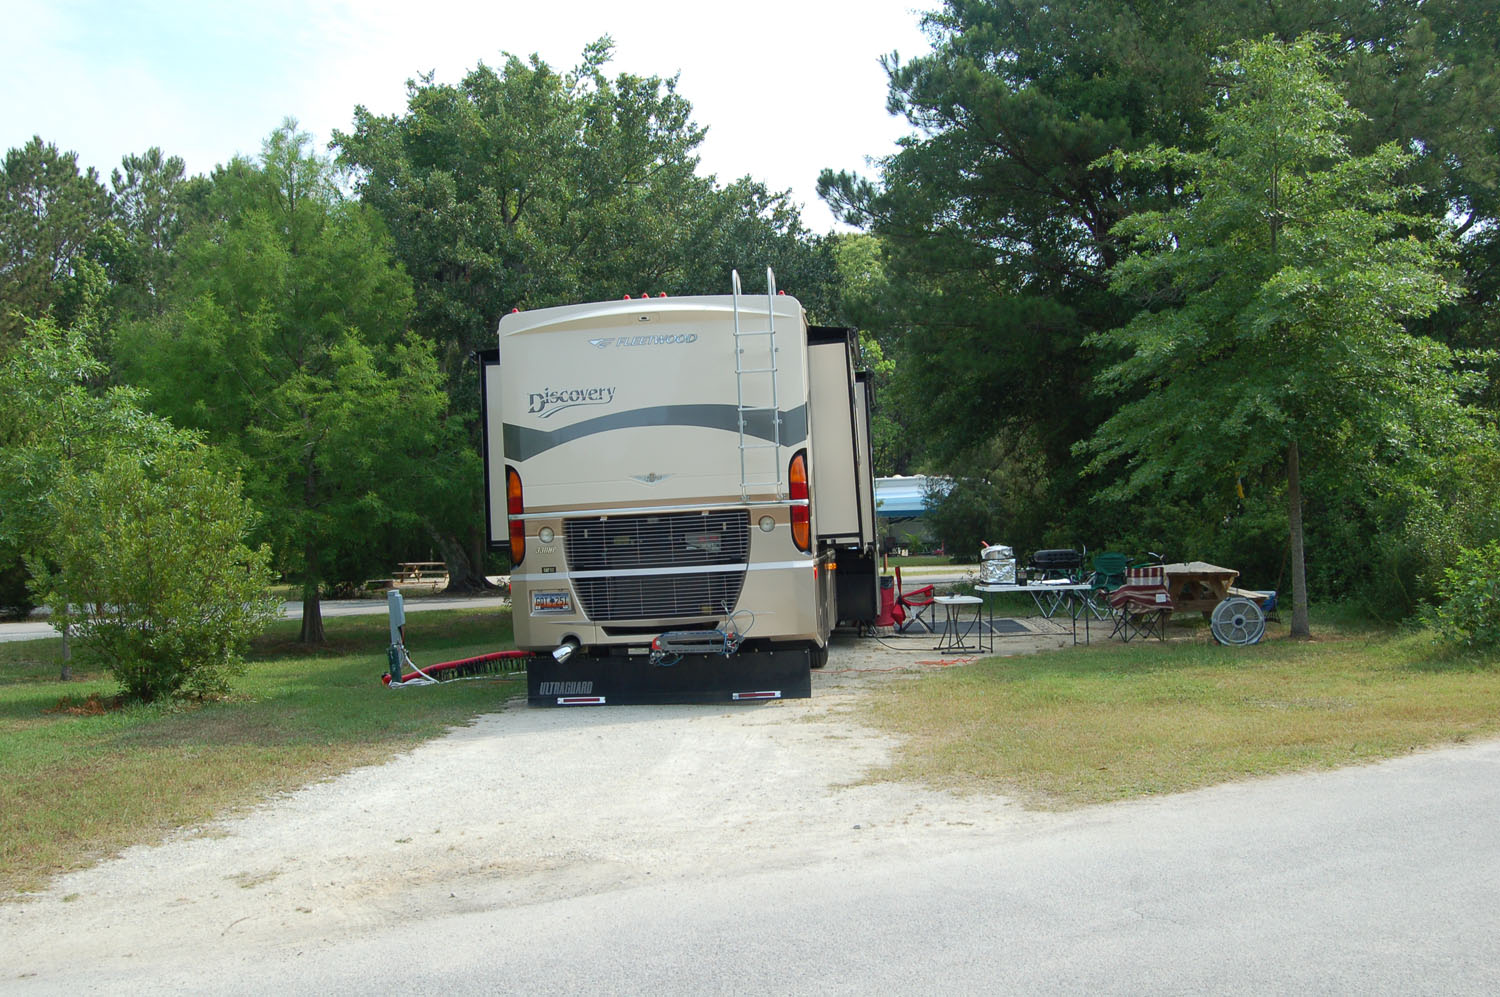 Image of campsite #41 at the Campground at James Island County Park